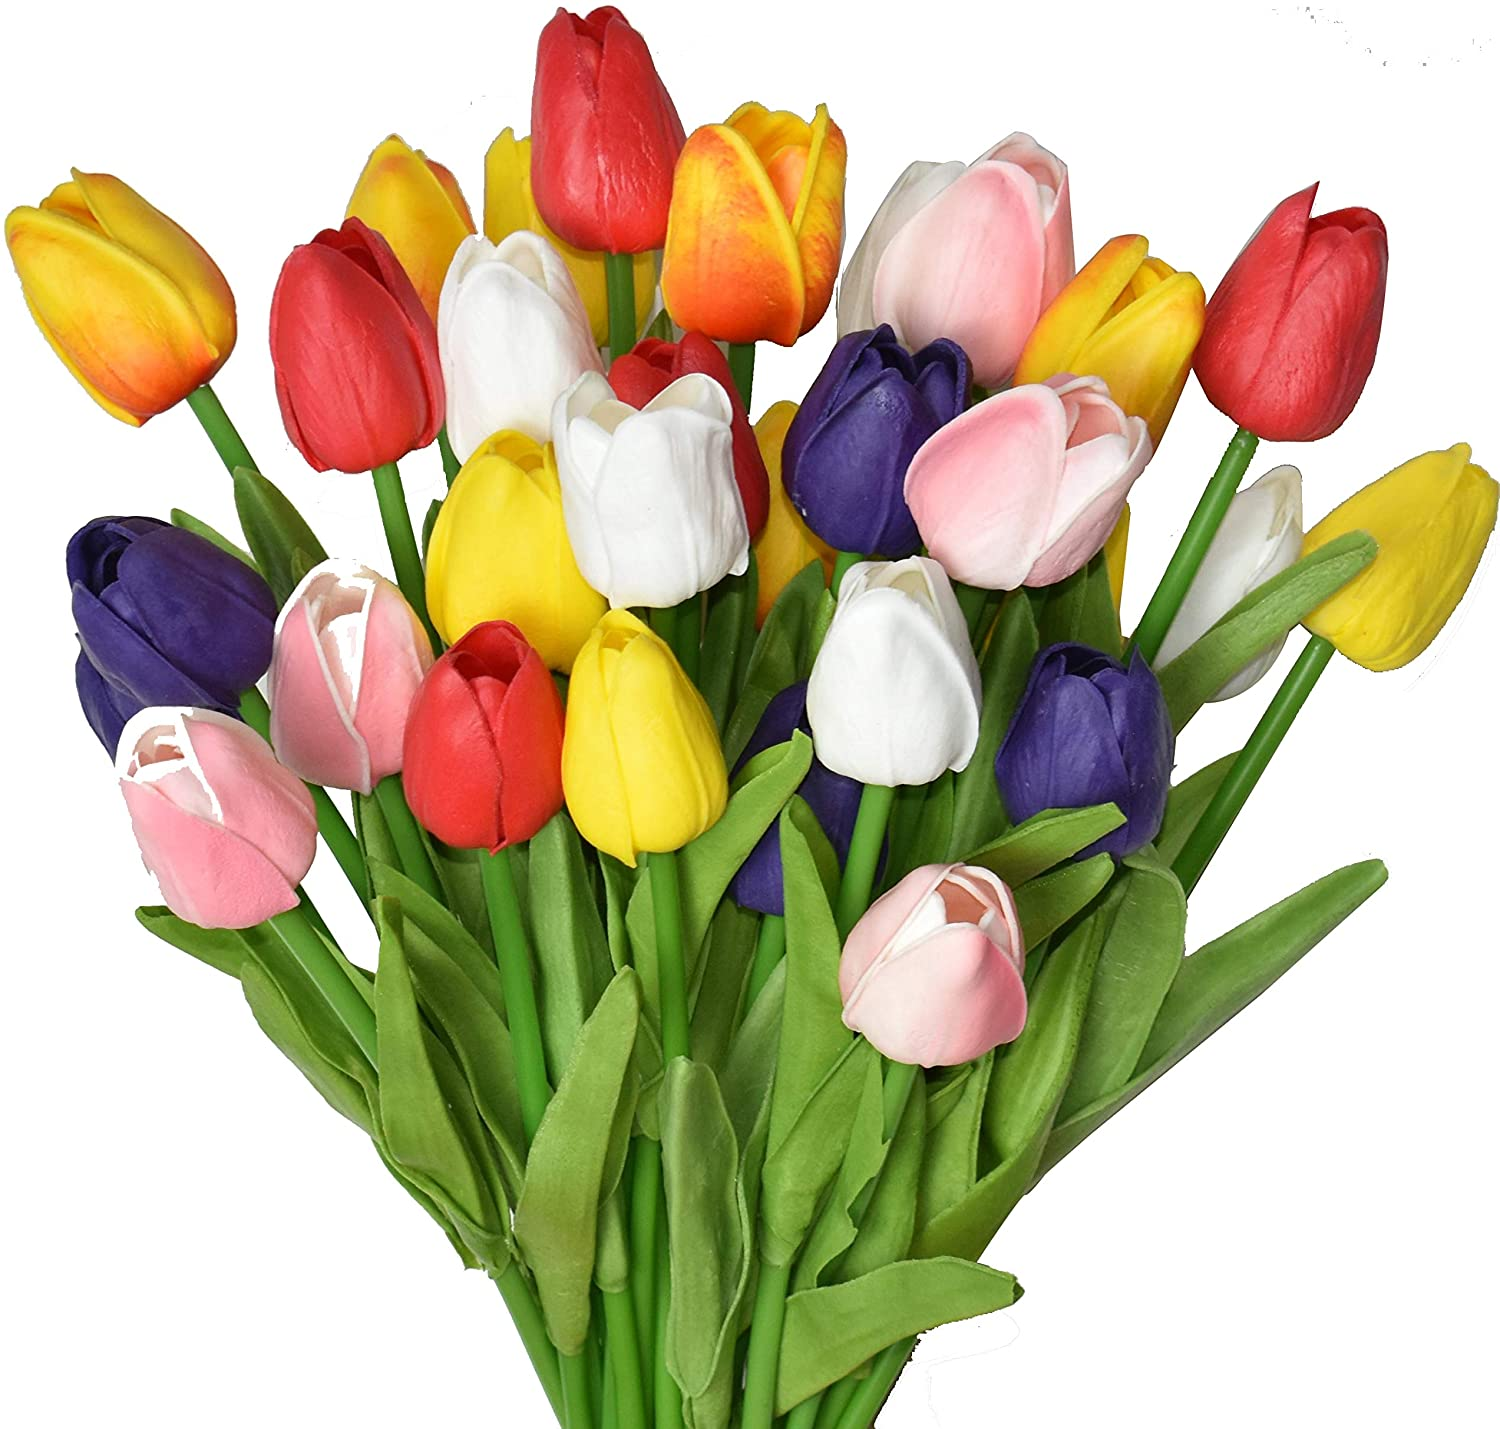 WISTART 24pcs Multicolor Artificial Tulips Flowers Fake Faux PU Tulip Bouquet Real Touch Flower Arrangement for Home Room Office Party Wedding Decoration Excellent Gift Idea for Mothers Day